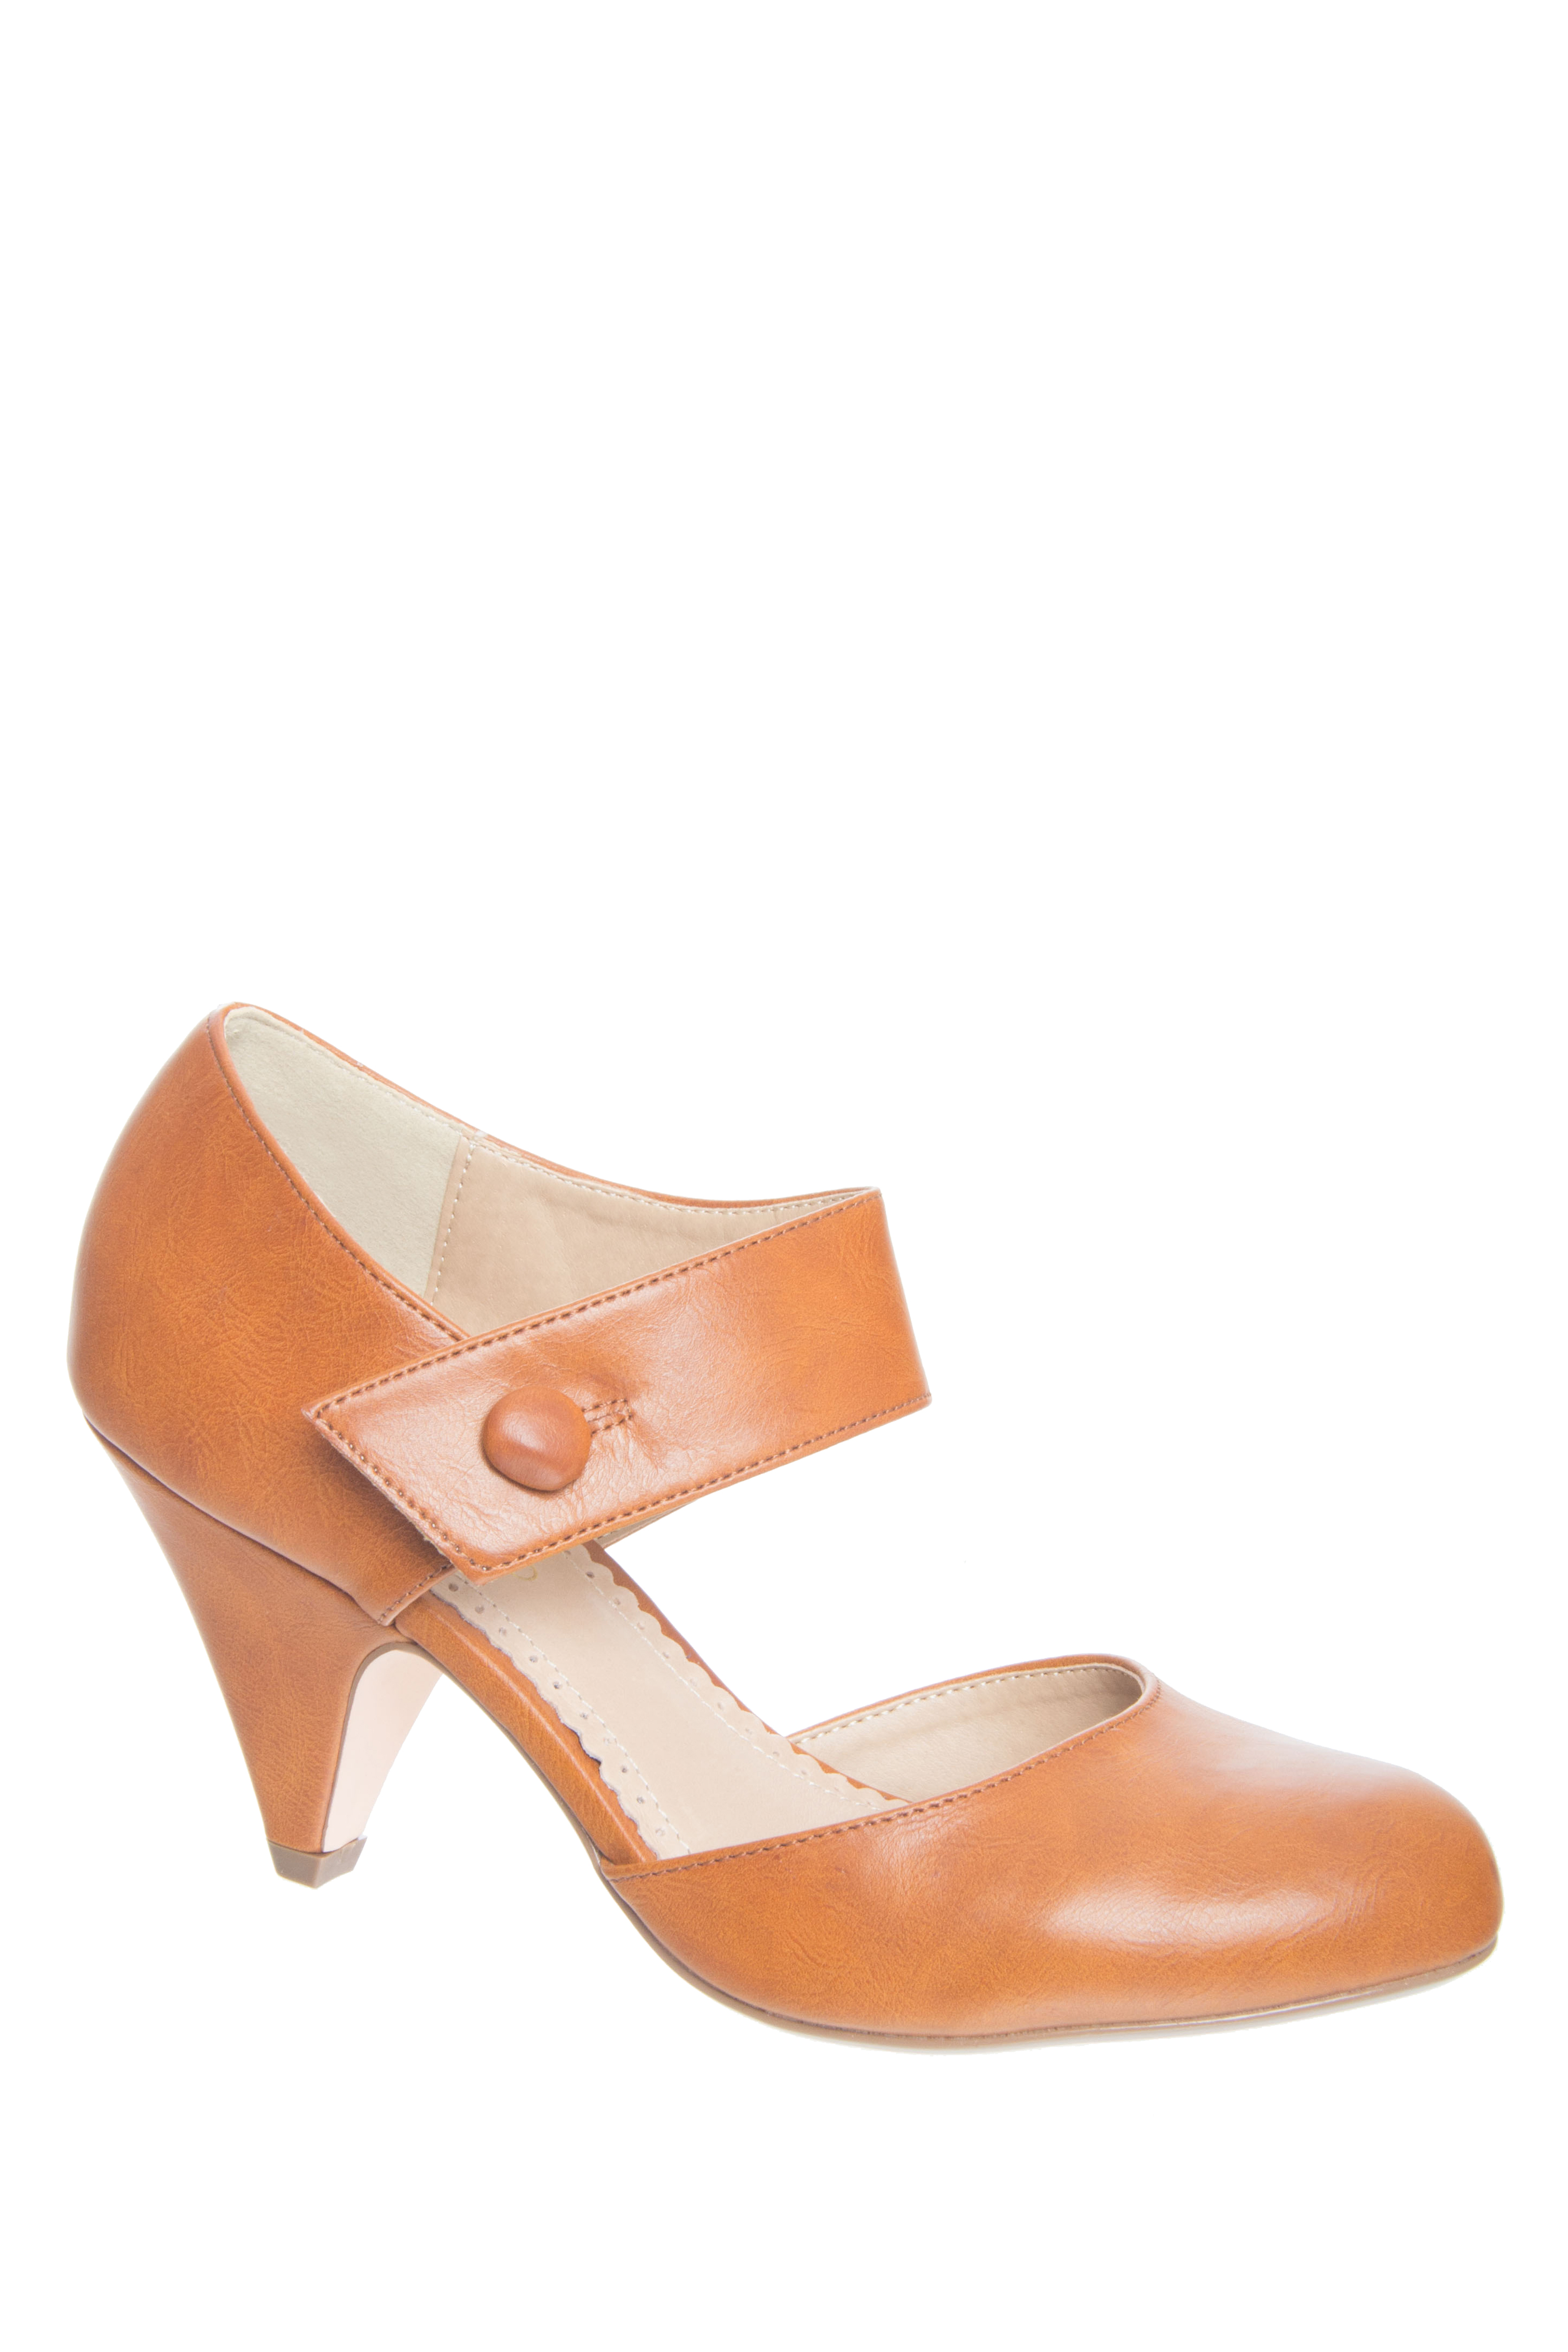 Restricted Chatroom Mid Heel Pumps - Whiskey